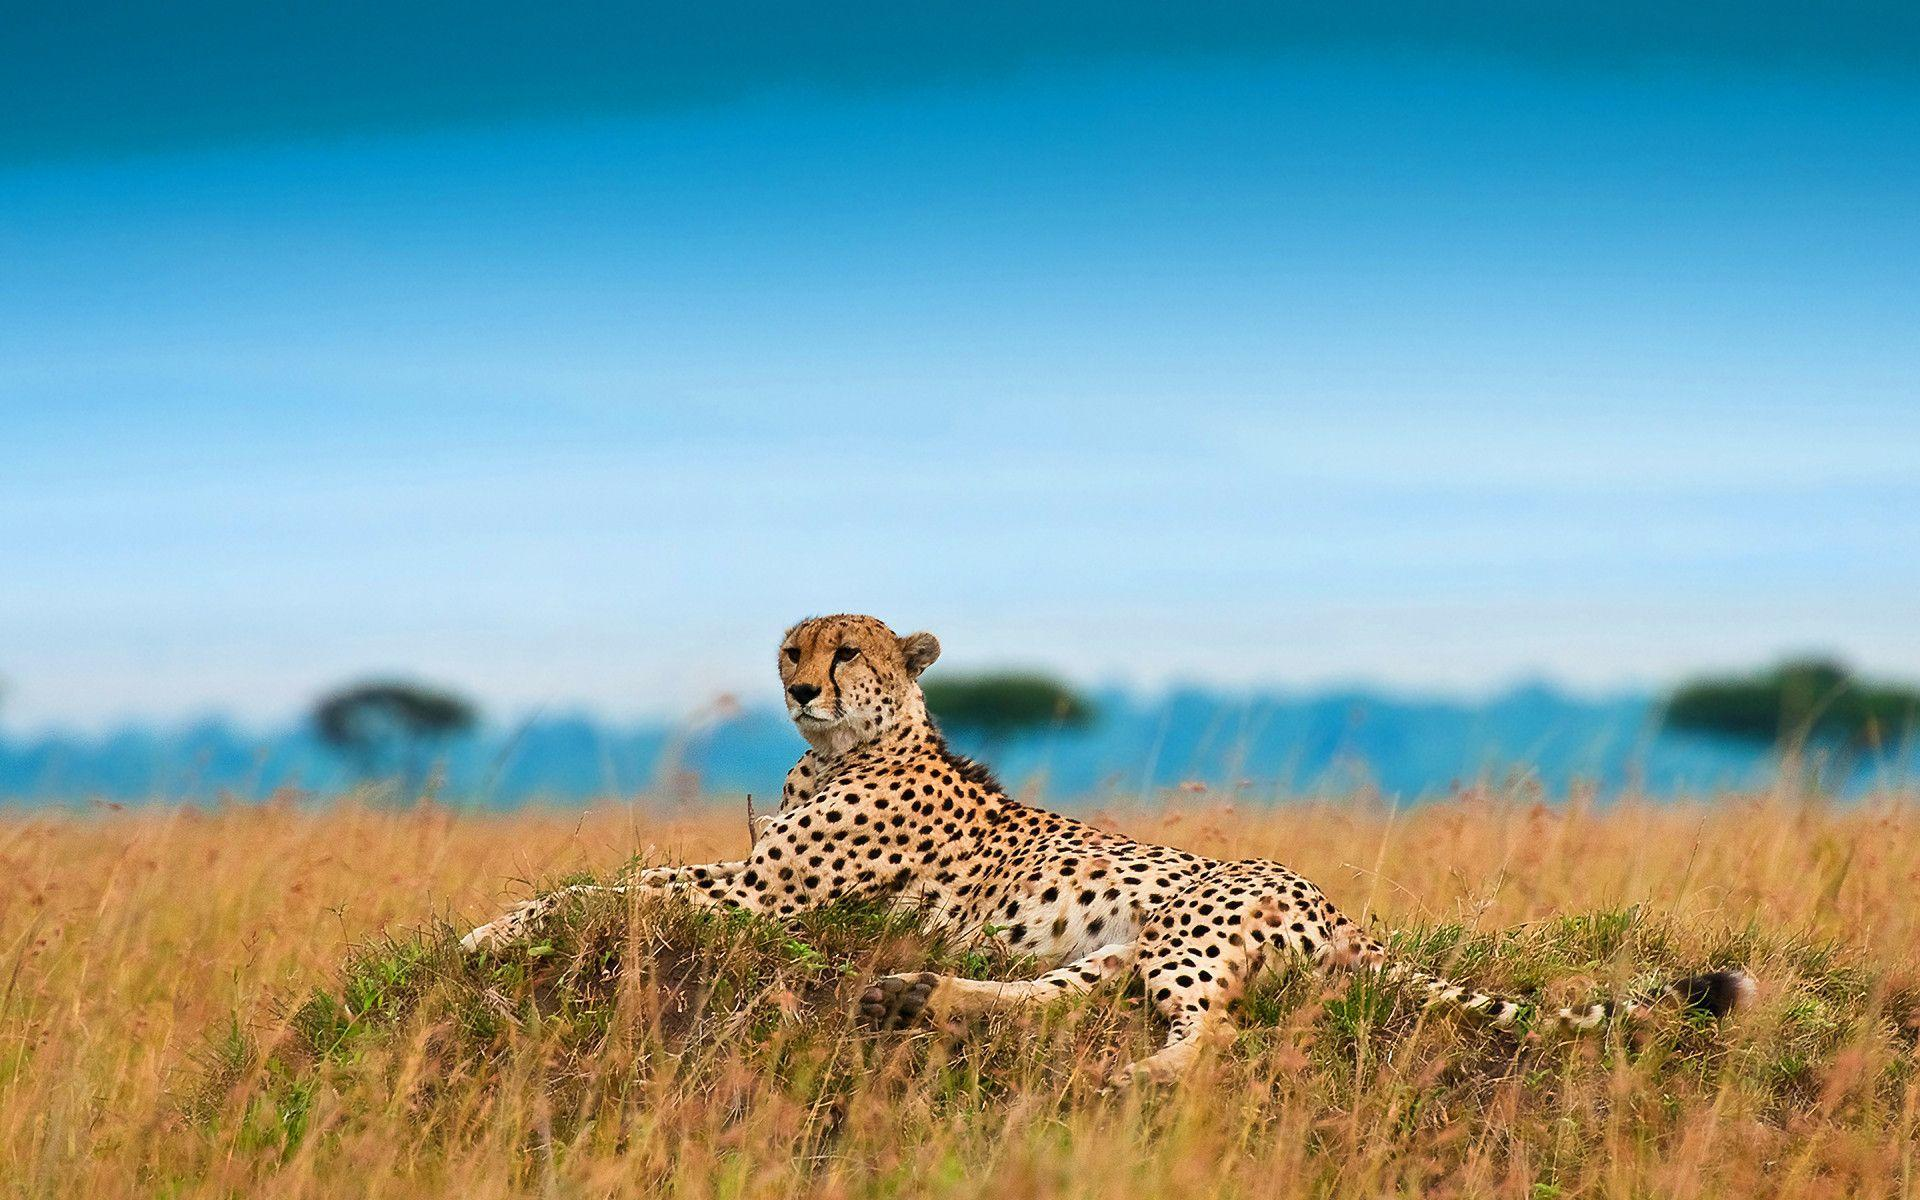 Cheetah Wallpaper 20914 #8803001